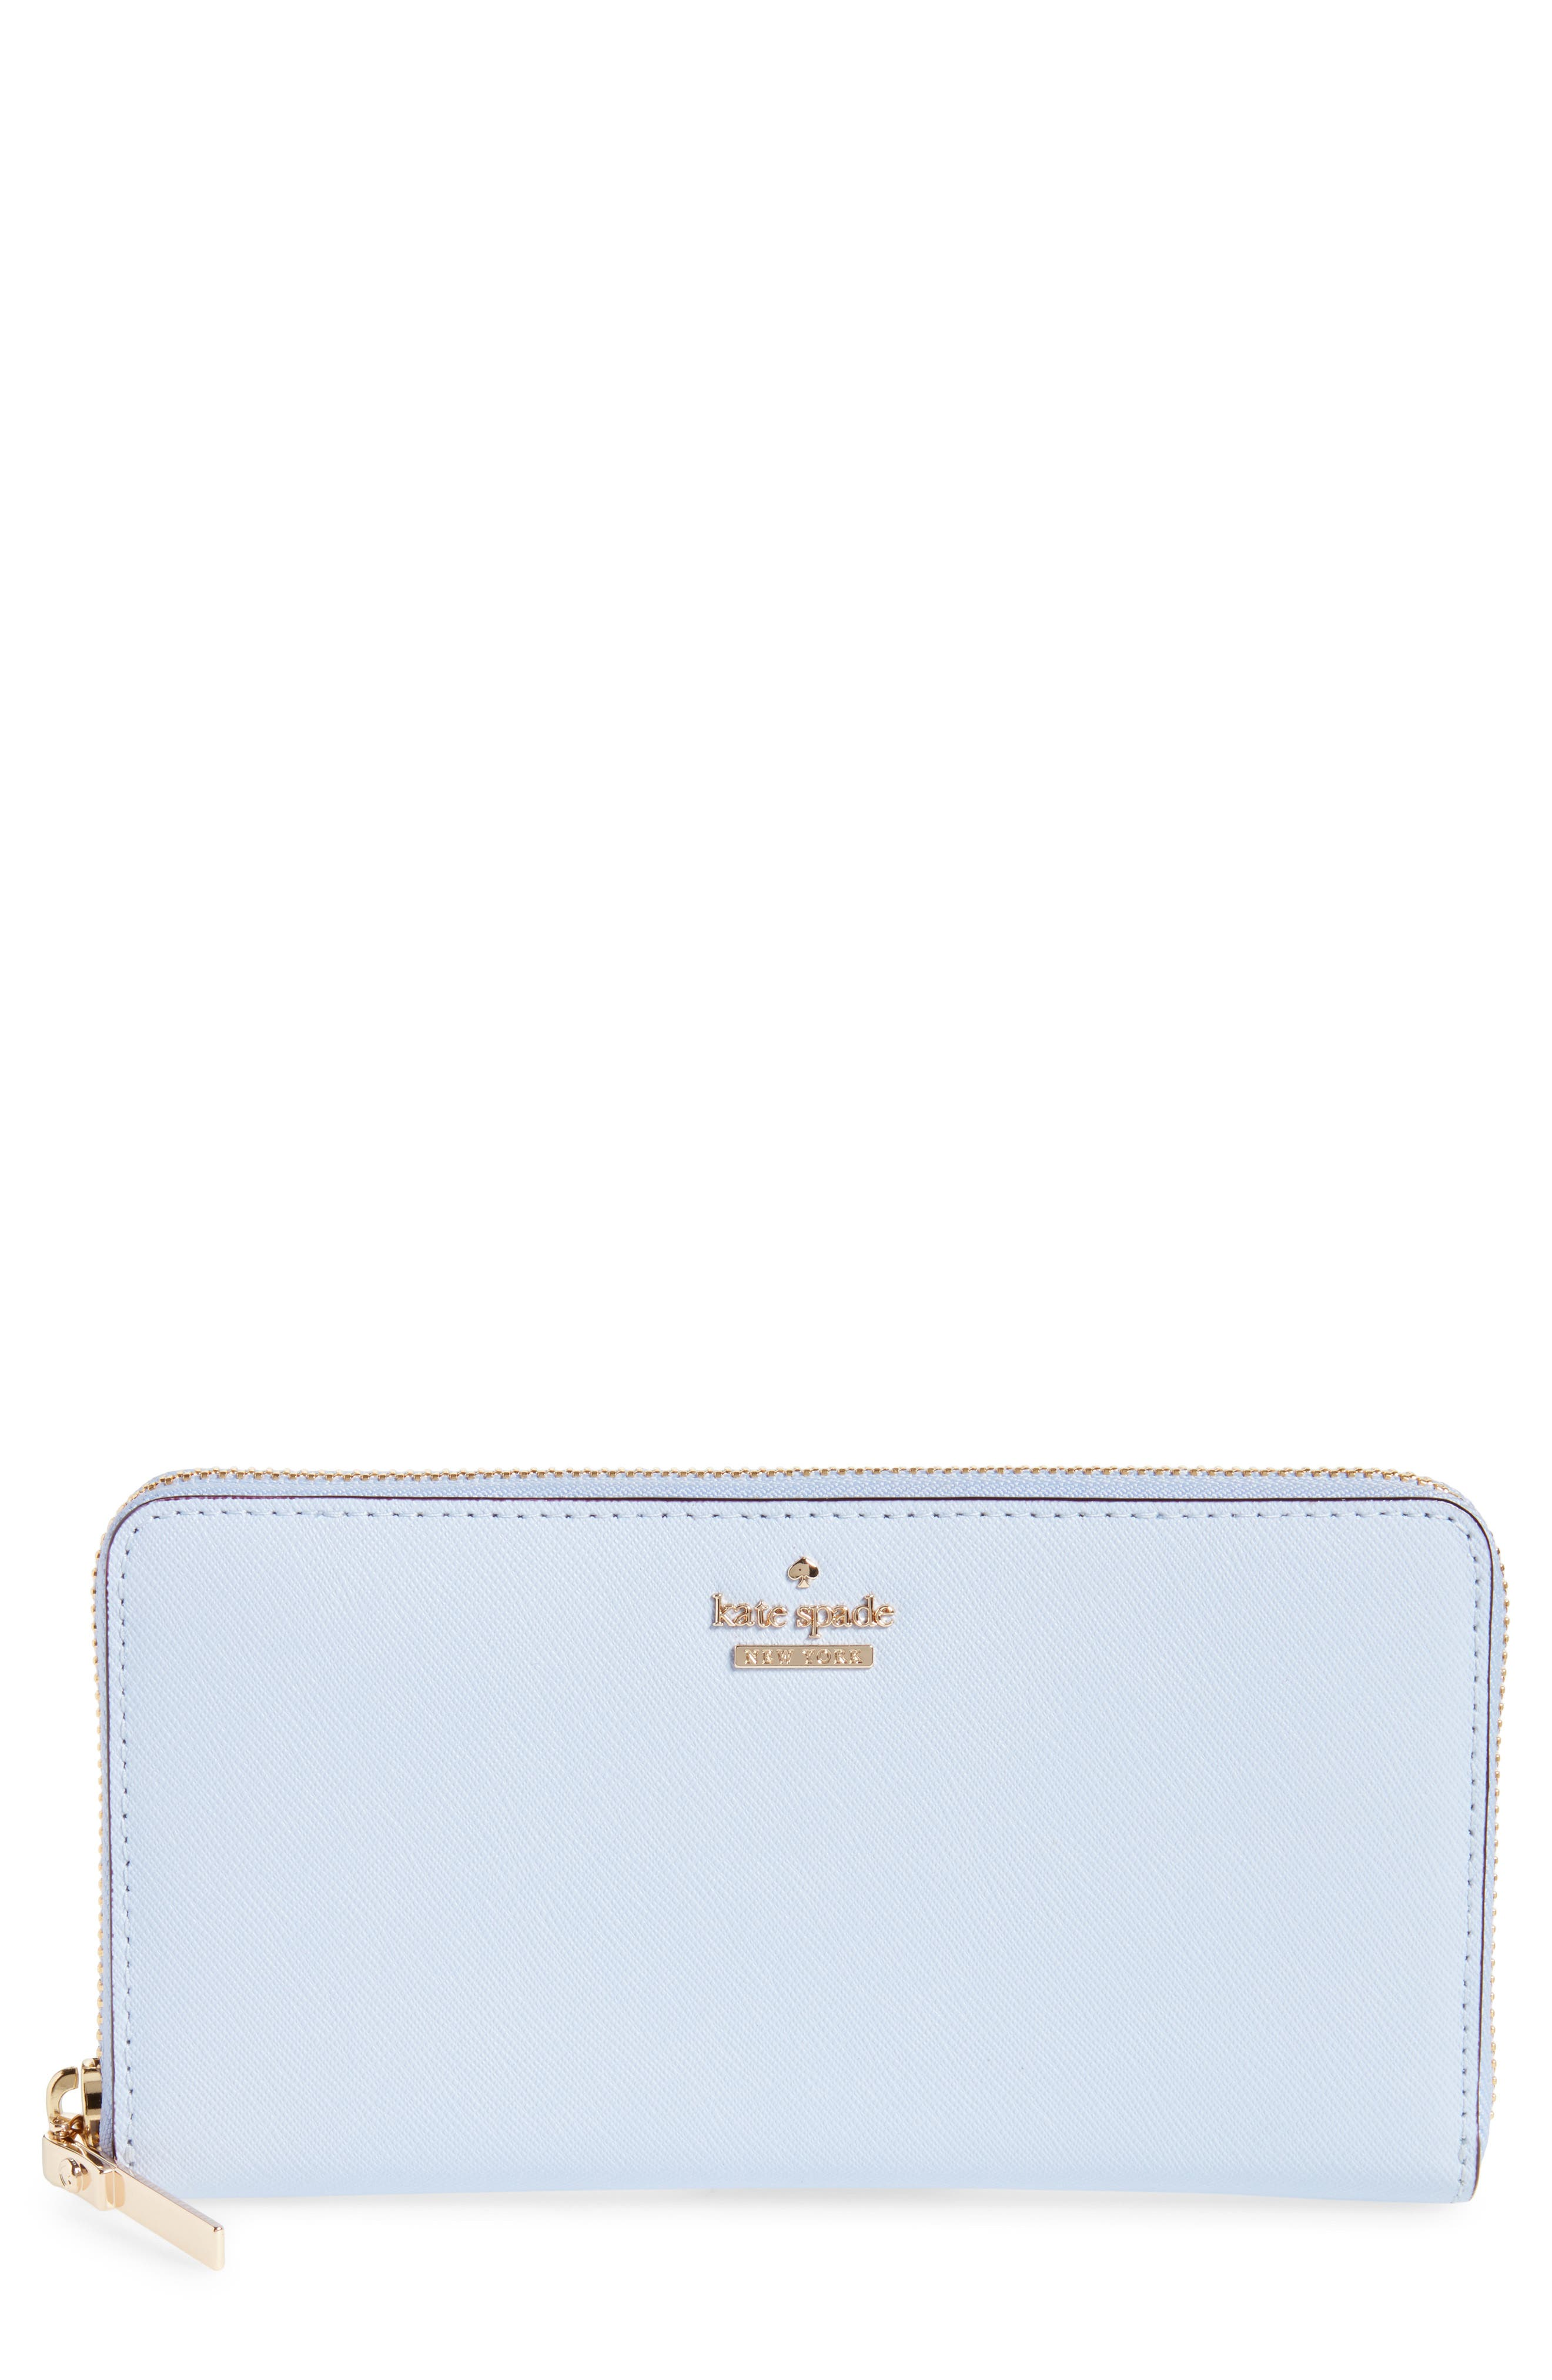 'cameron street - lacey' leather wallet,                             Main thumbnail 1, color,                             Morning Dawn